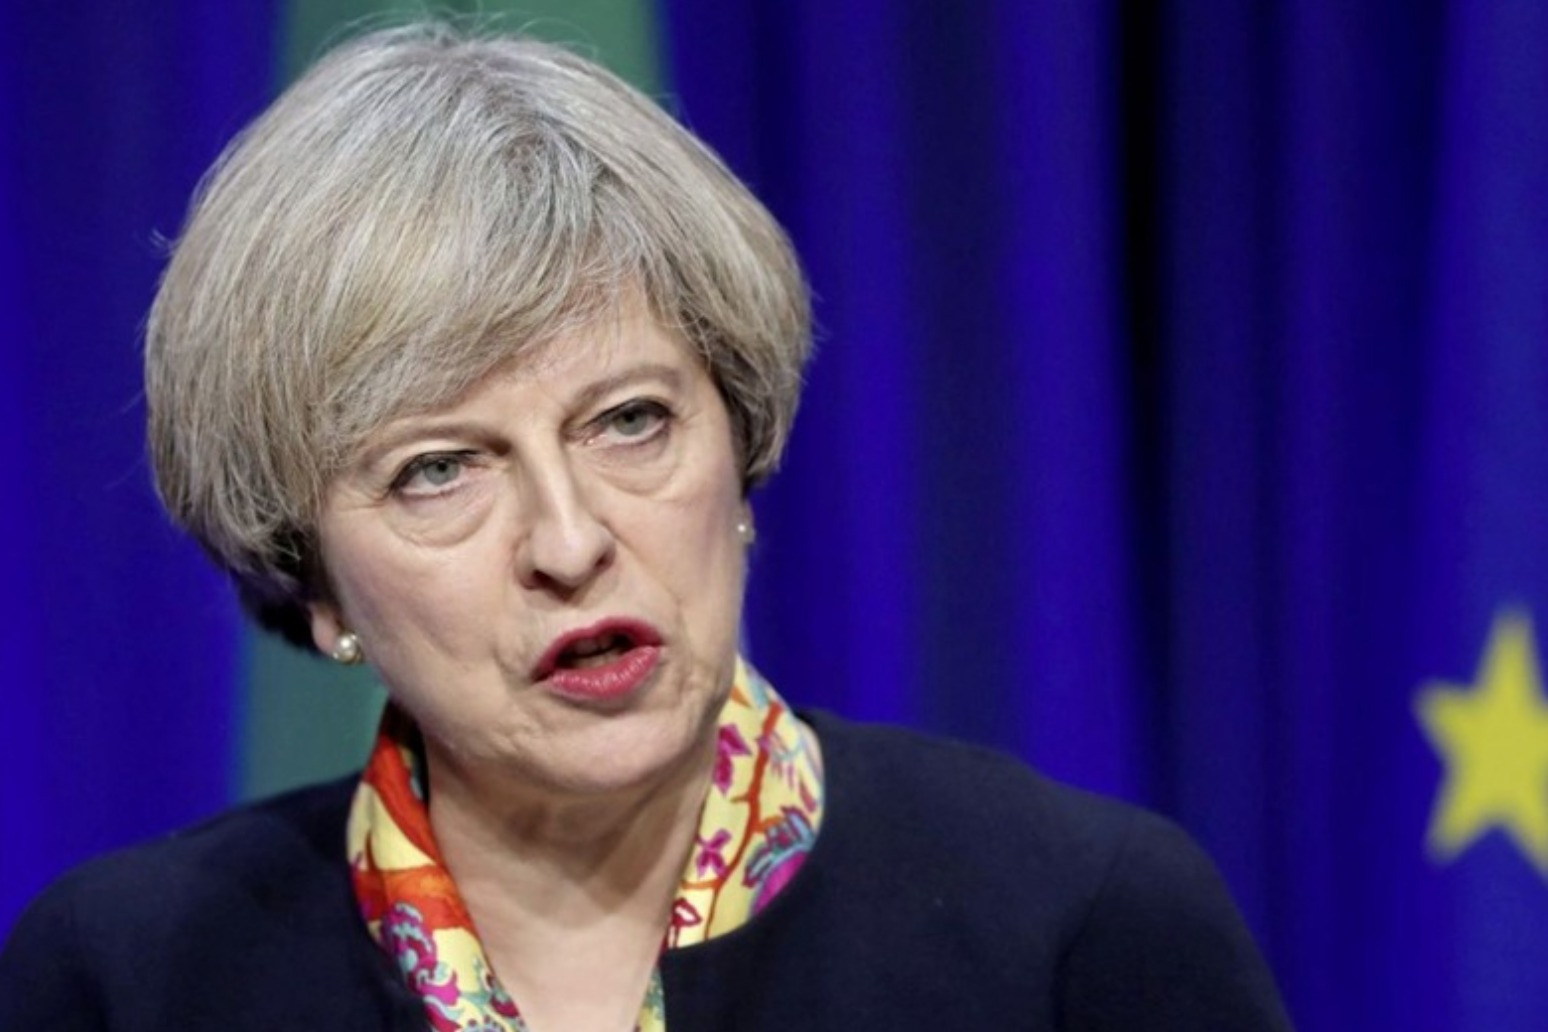 Theresa May faces another day of Brexit compromise in parliament